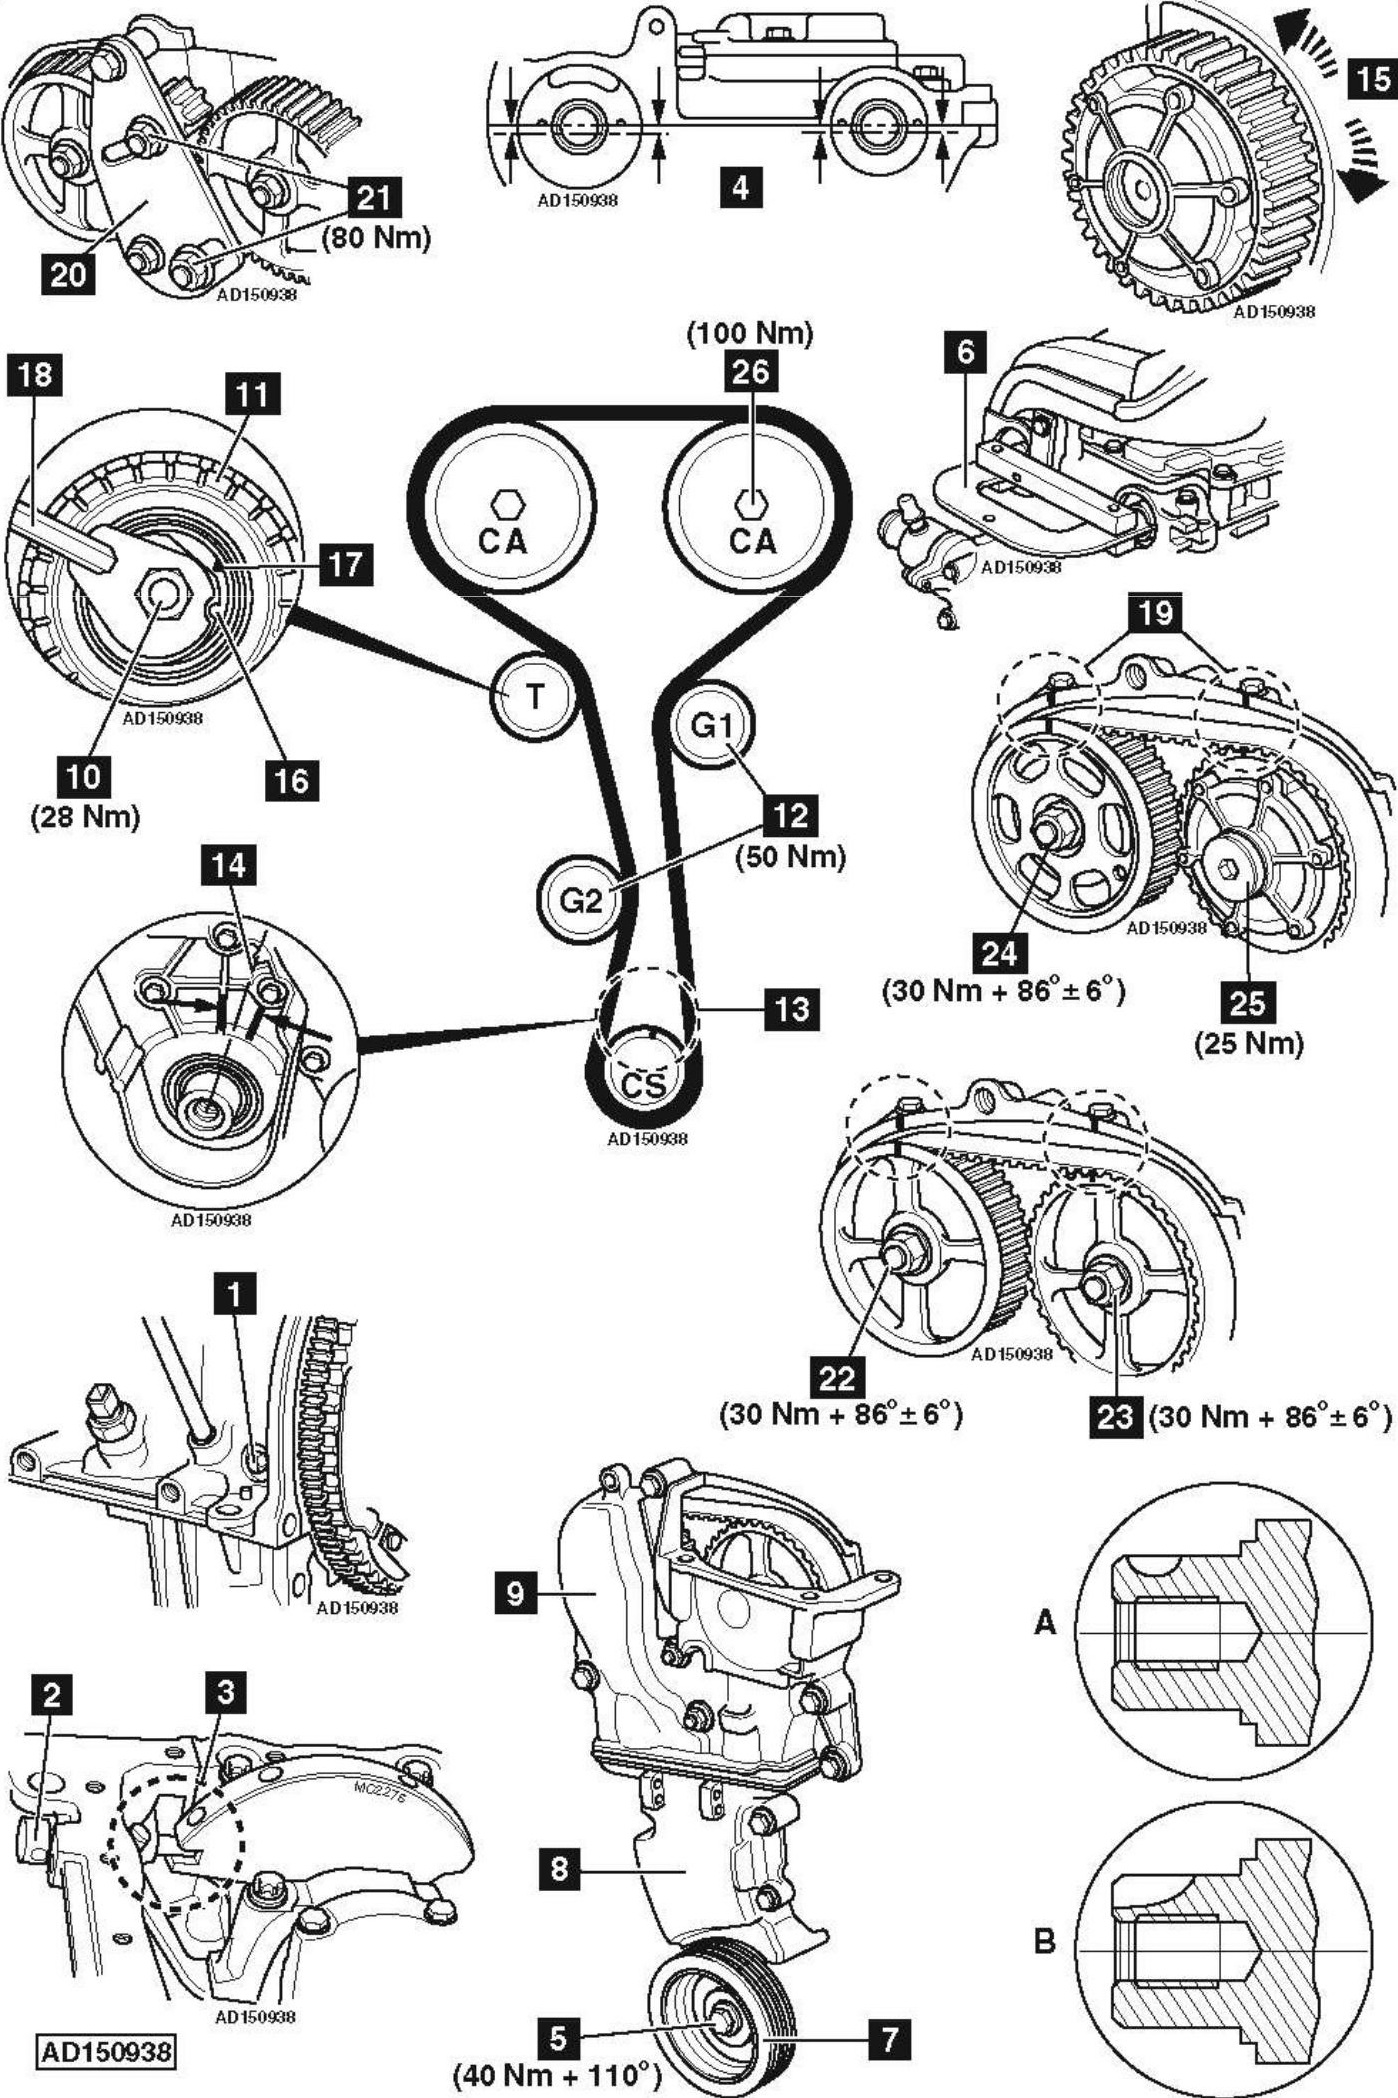 Wrg Twin Cam Engine Diagram 2 4 Timing Chain